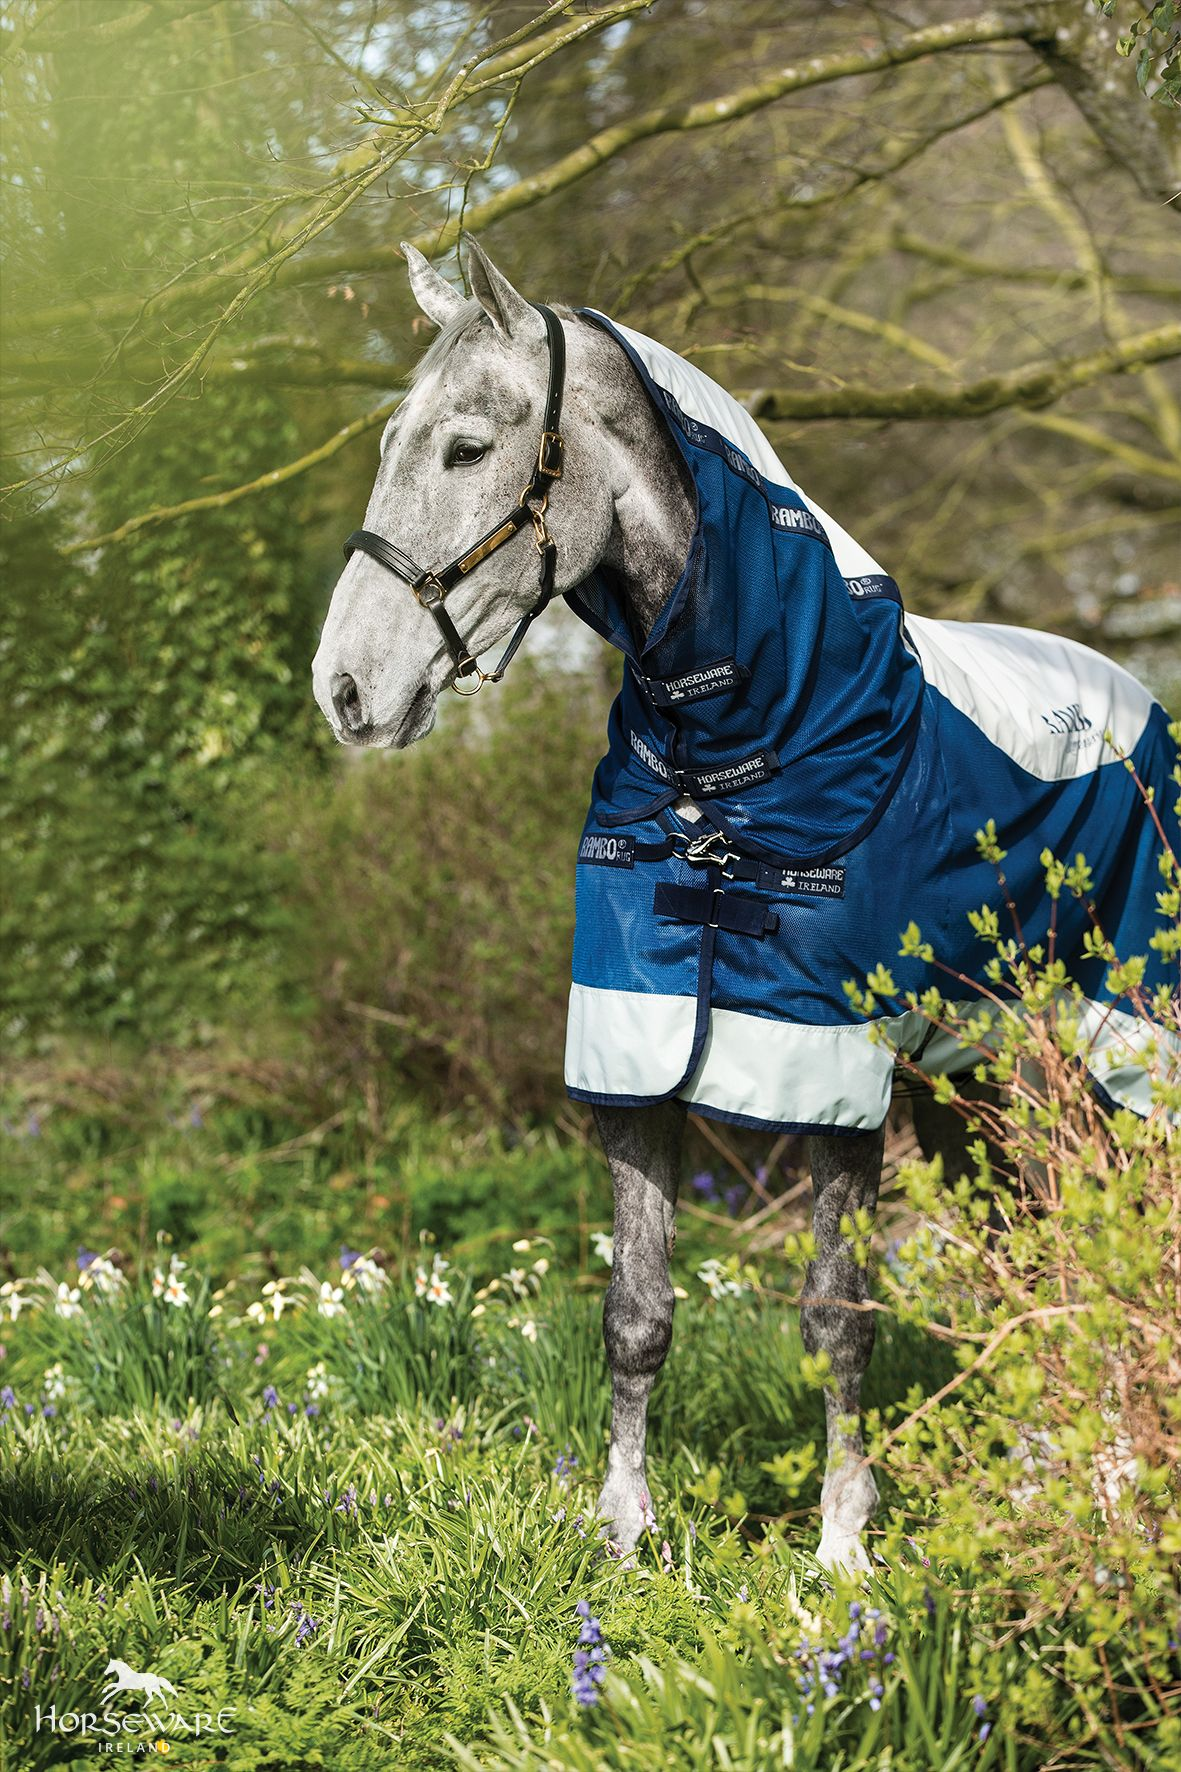 Rambo Summer Series Turnout Visit Www Horseware Com To Find